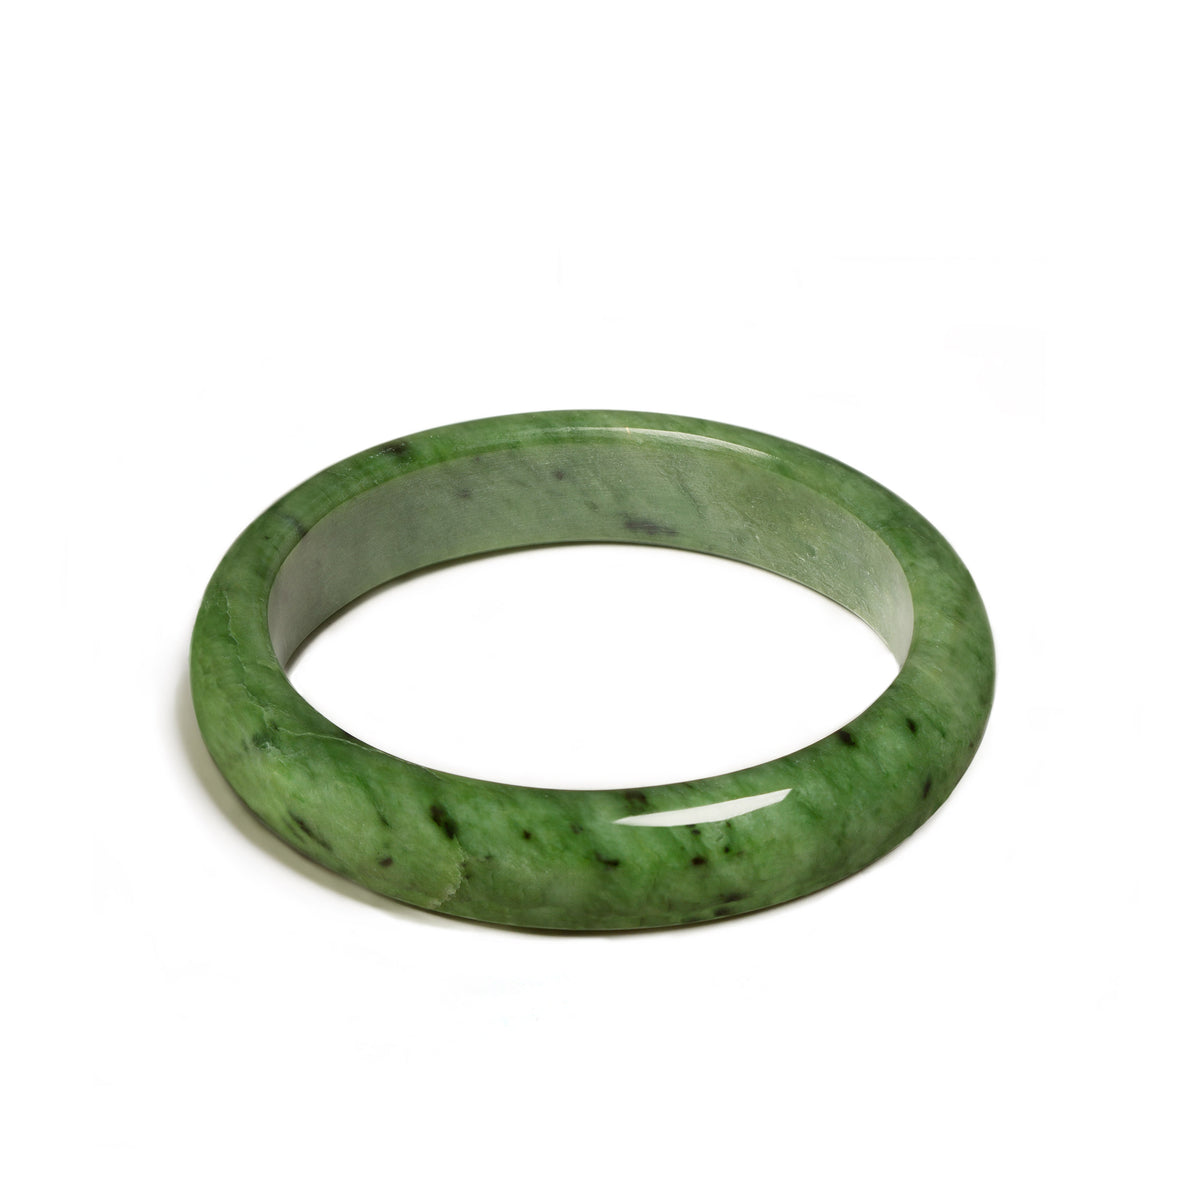 New Zealand Greenstone Light Jade Bangle (63mm)